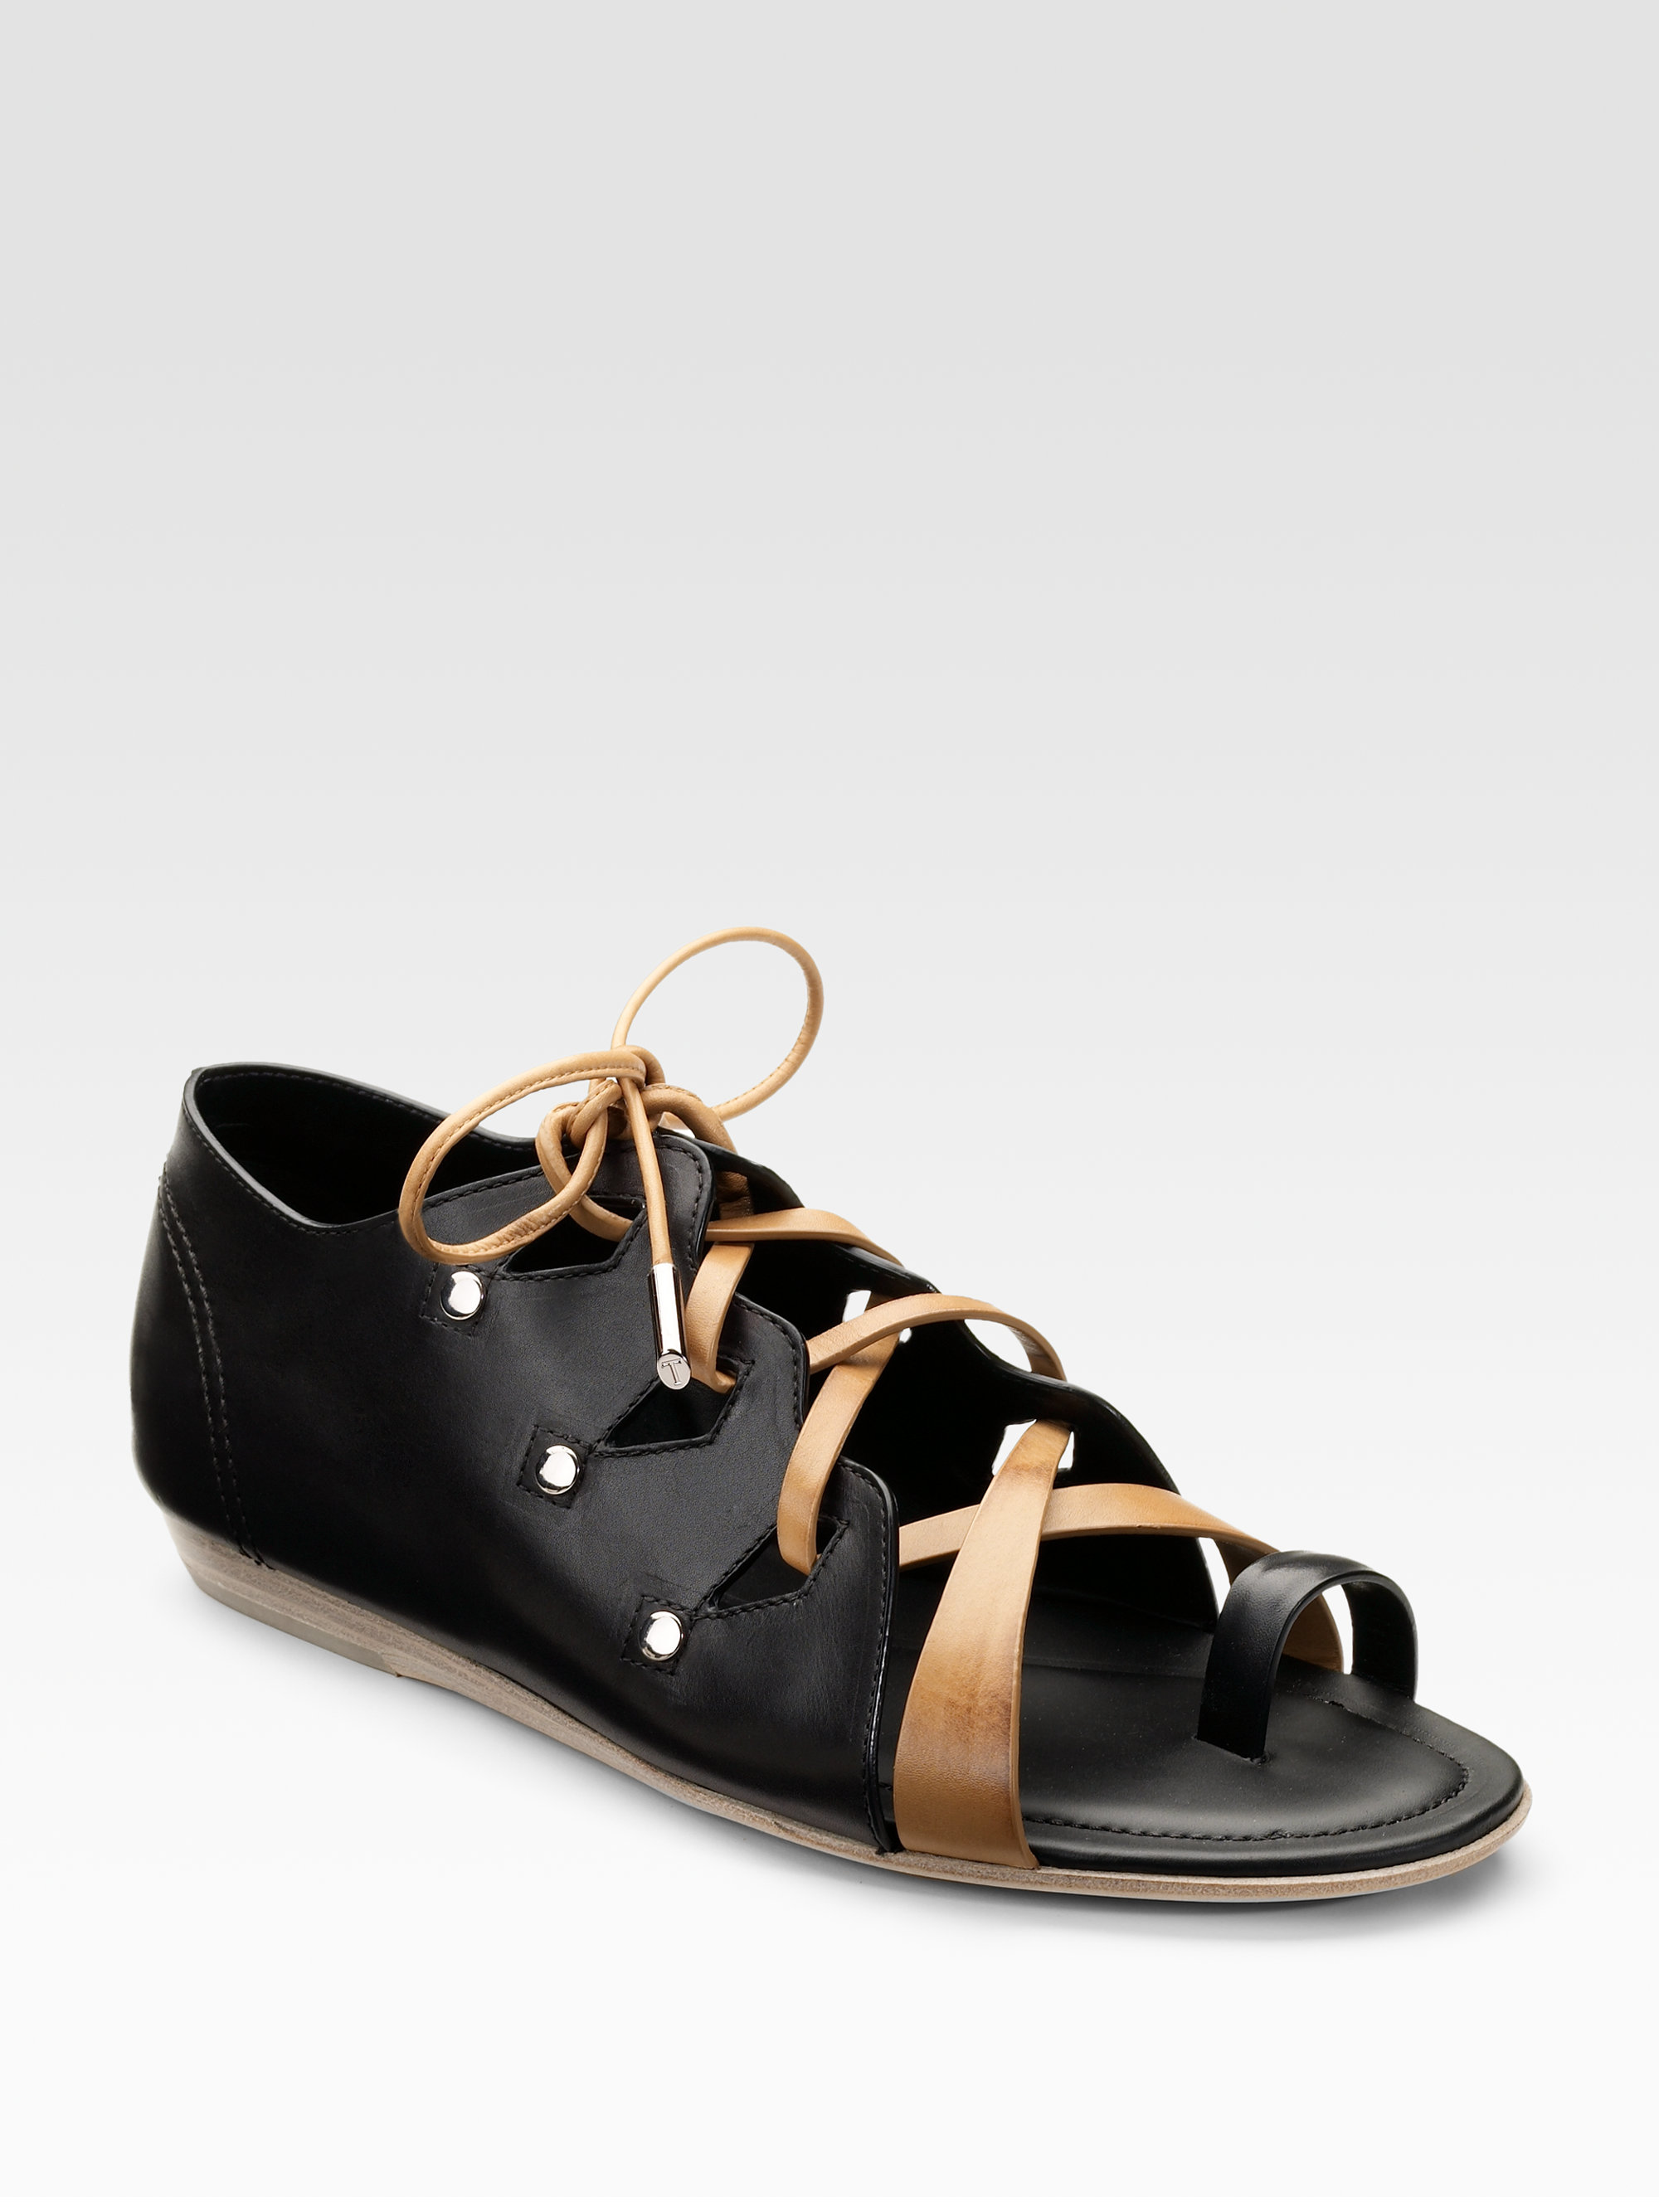 c6041d7a143 tods-black-nuovo-matisse-laceup-sandals-product-1-8121401-954050265.jpeg